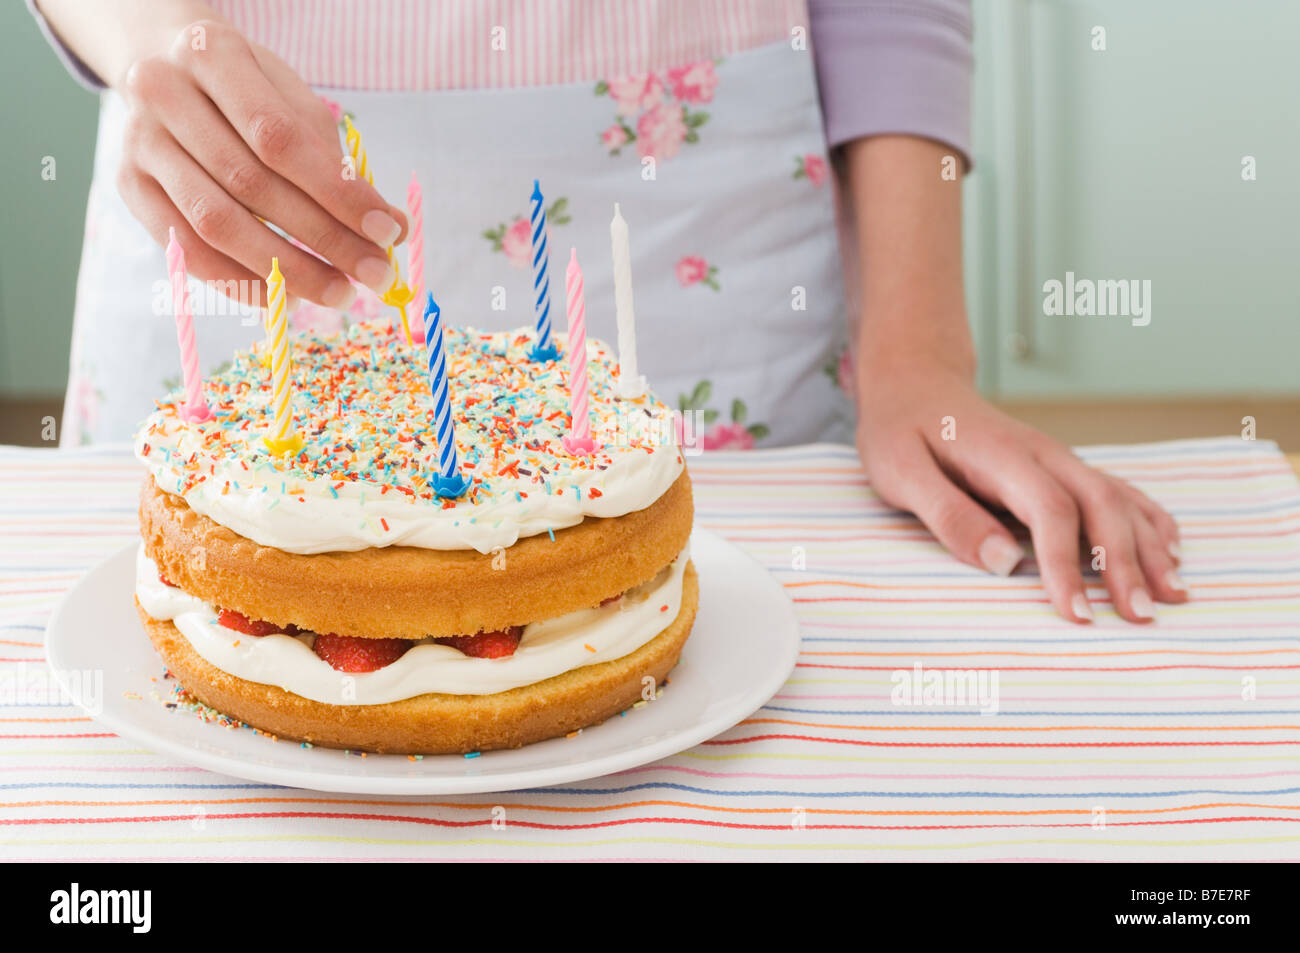 Woman with birthday cake Photo Stock